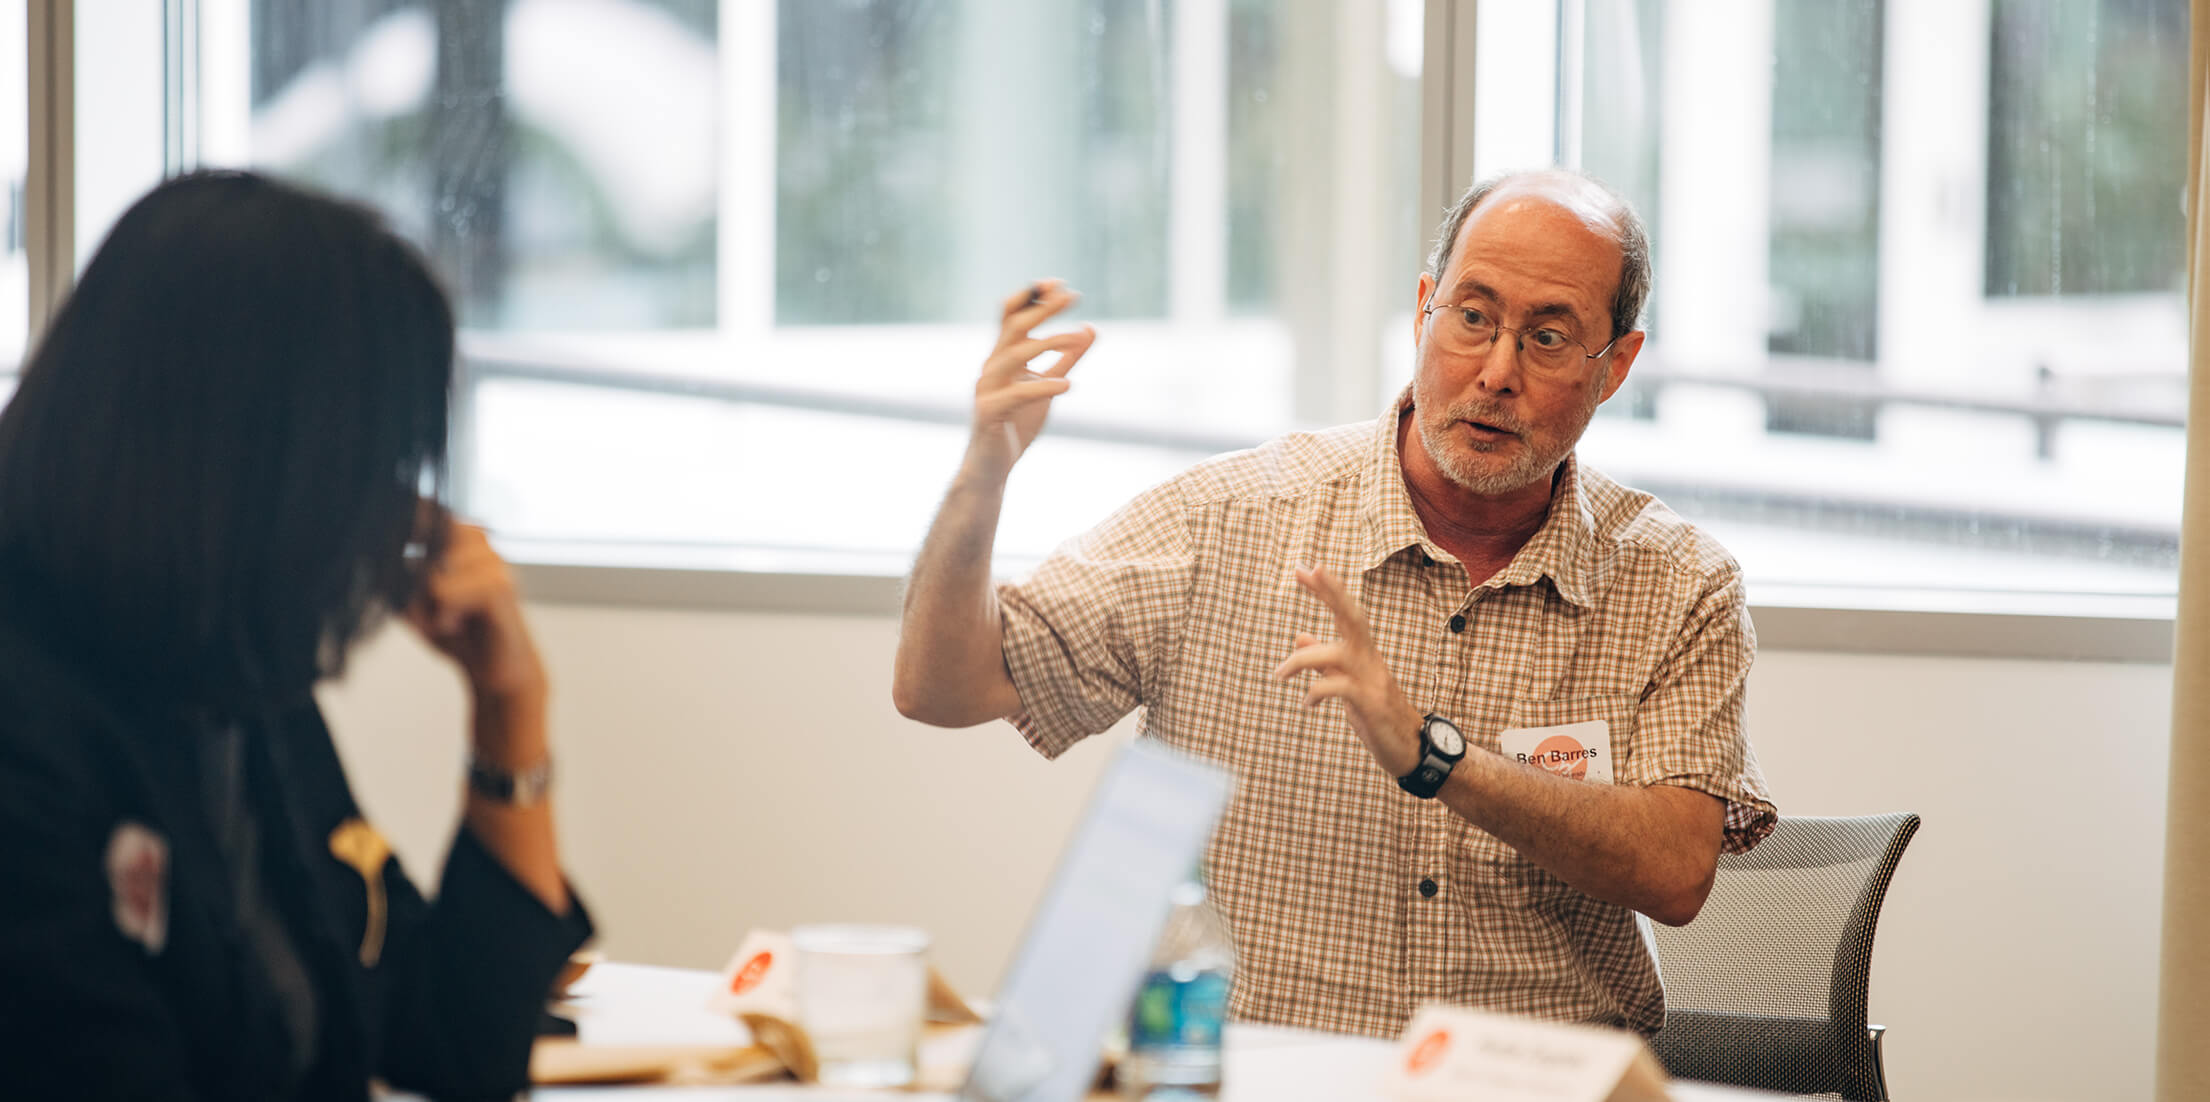 CZI's Ben Barres Early Career Acceleration Awards are named for the late Ben Barres (pictured), an American neurobiologist and fierce advocate for young scientists, women, mentorship, and diversity in science.